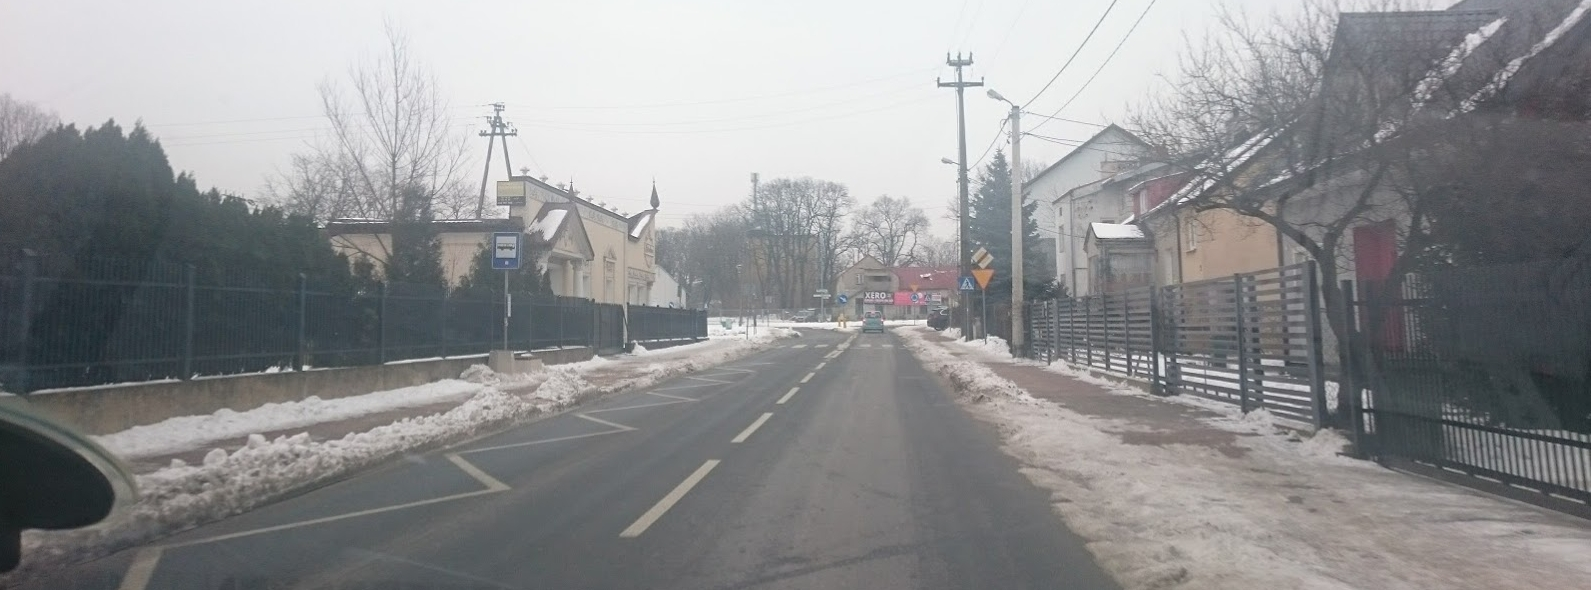 """On the right side of the picture, in the sidewalk area, you can see where it hasn't been shoveled. At this time, that would be treacherous to walk on . It has since rained and every place like this is extremely slippery. The bone hospitals are probably full with people who have fallen. Lots of people here do not have cars and """"still"""" walk from point A to point B."""